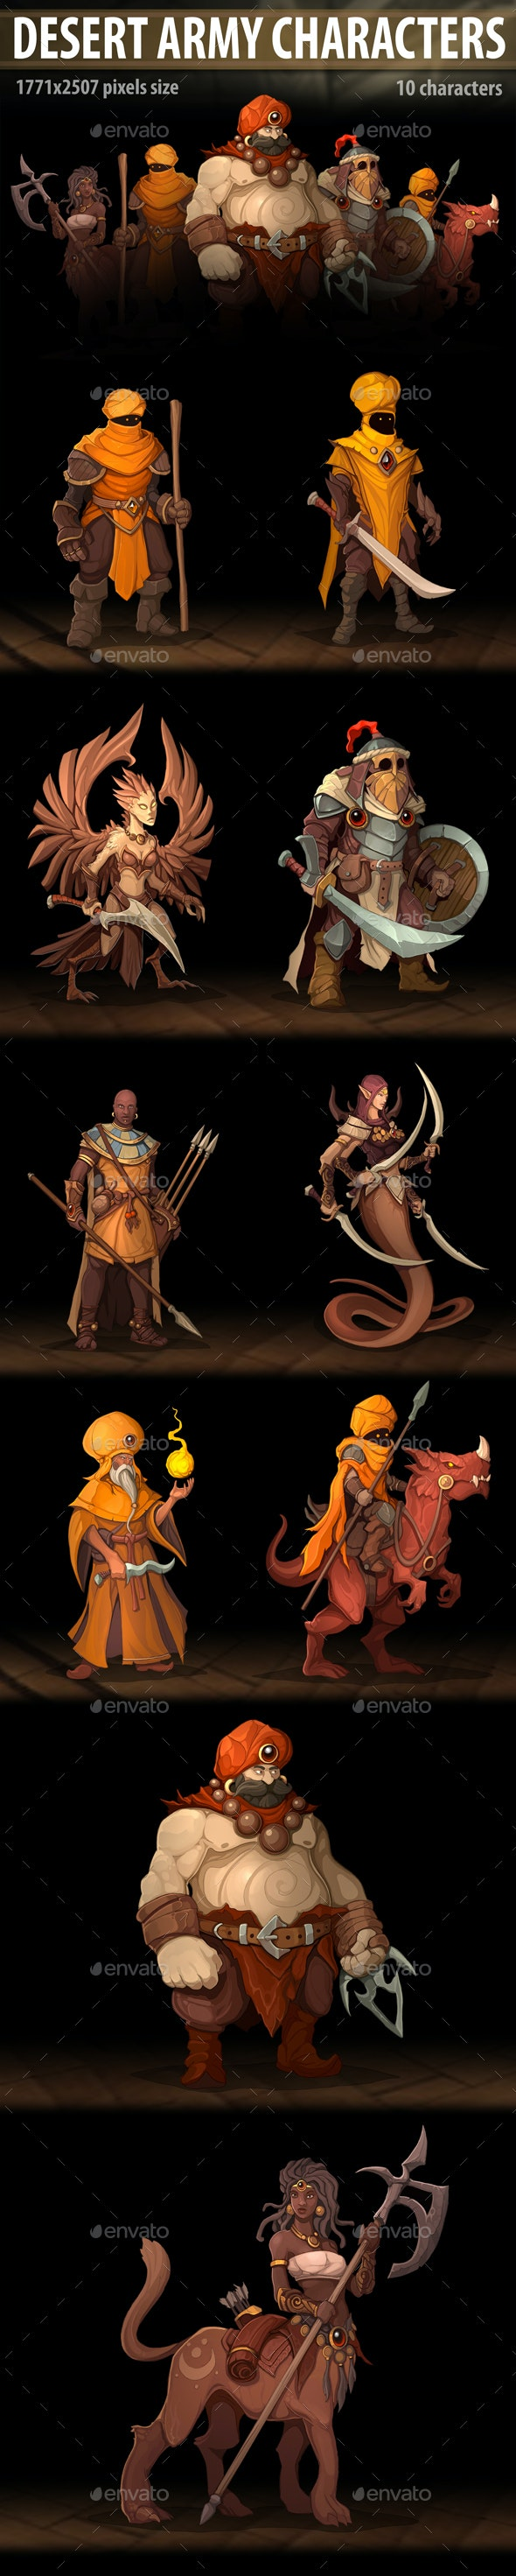 Desert Army Characters